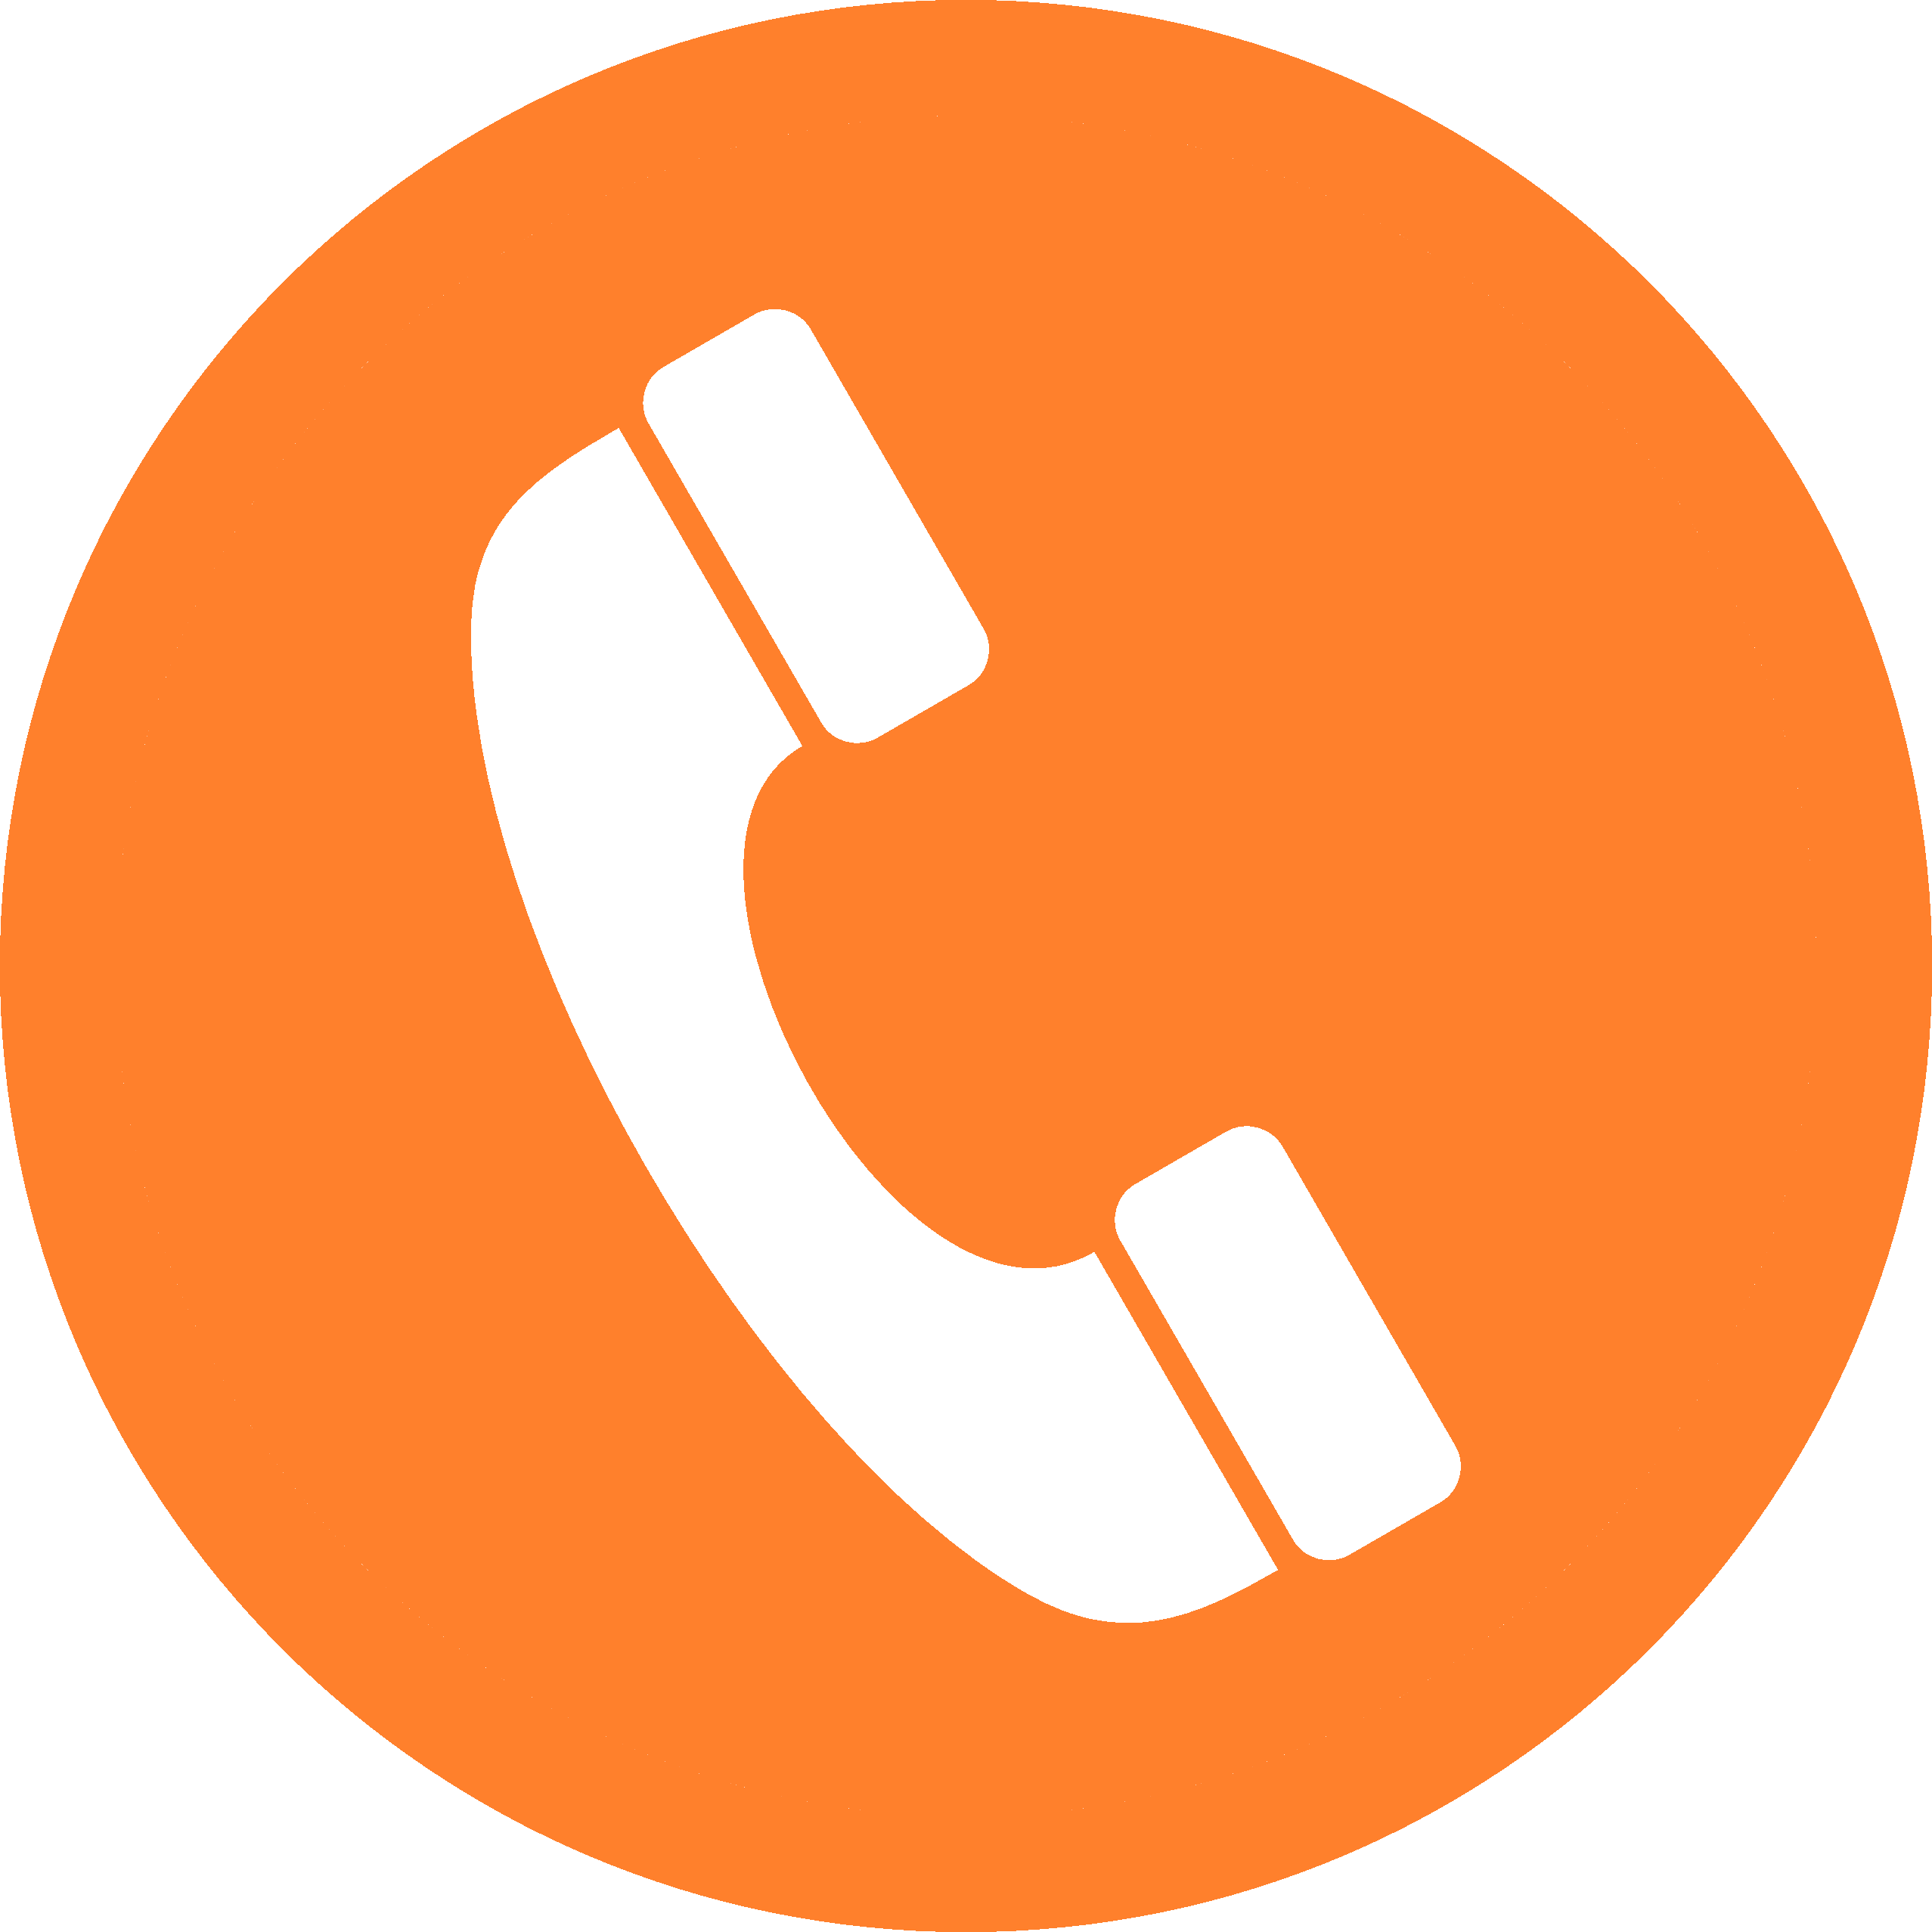 Phone PNG images, free picture download.